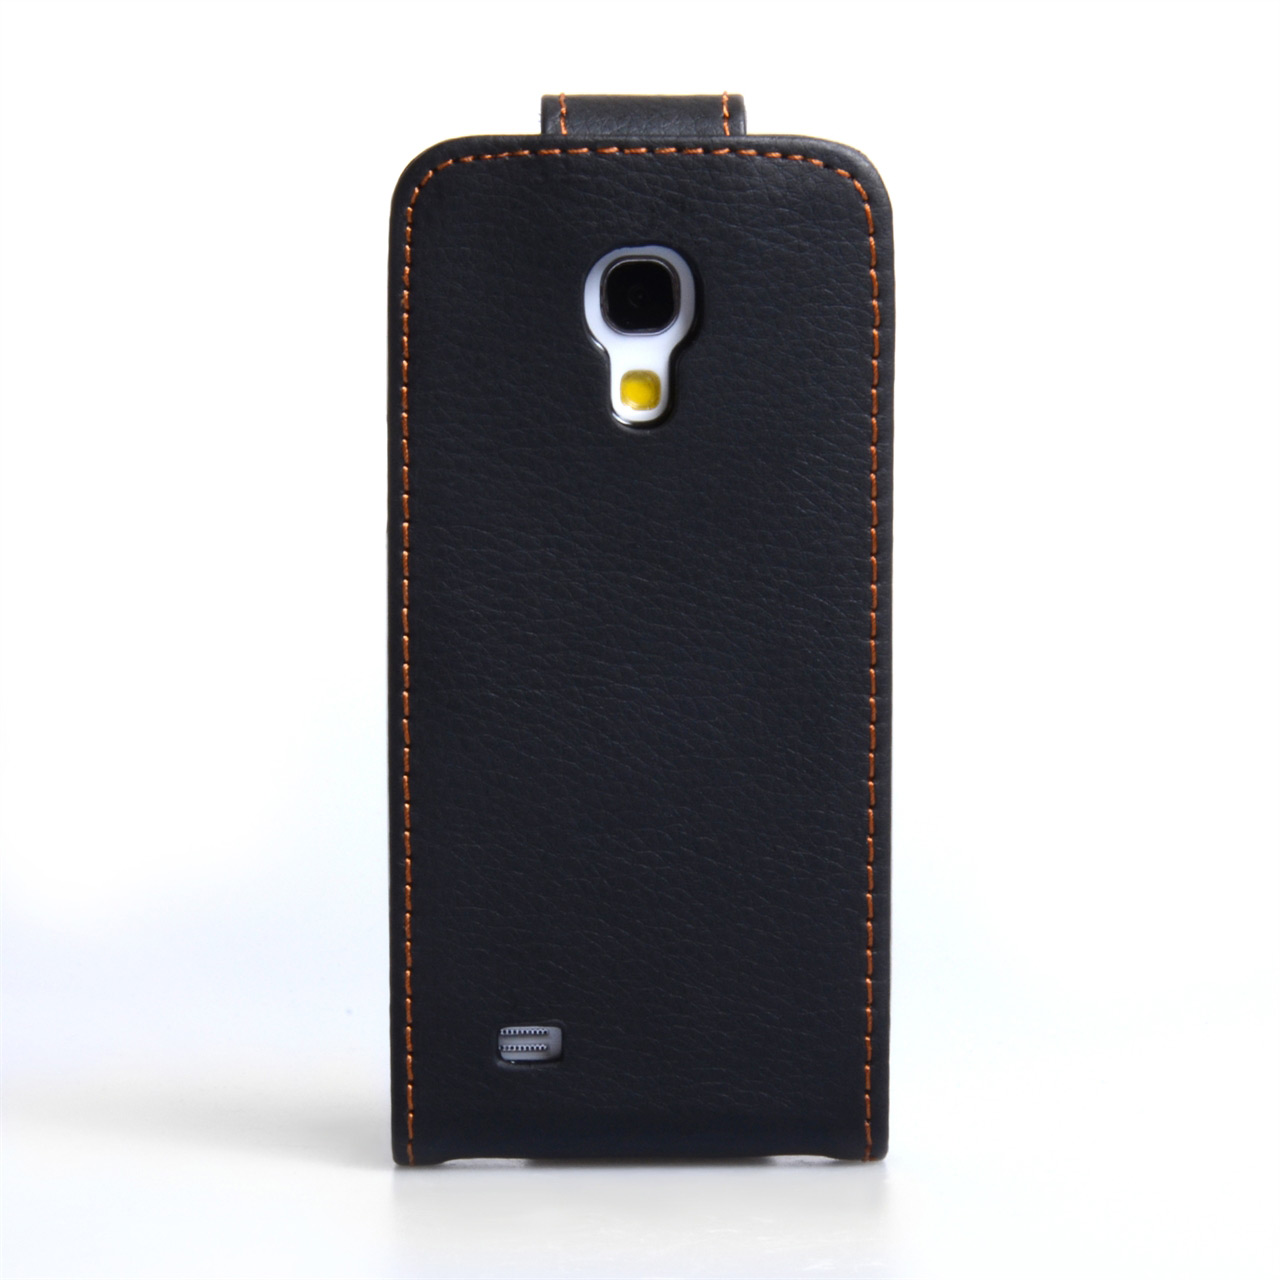 YouSave Samsung Galaxy S4 Mini Leather Effect Flip Case - Black